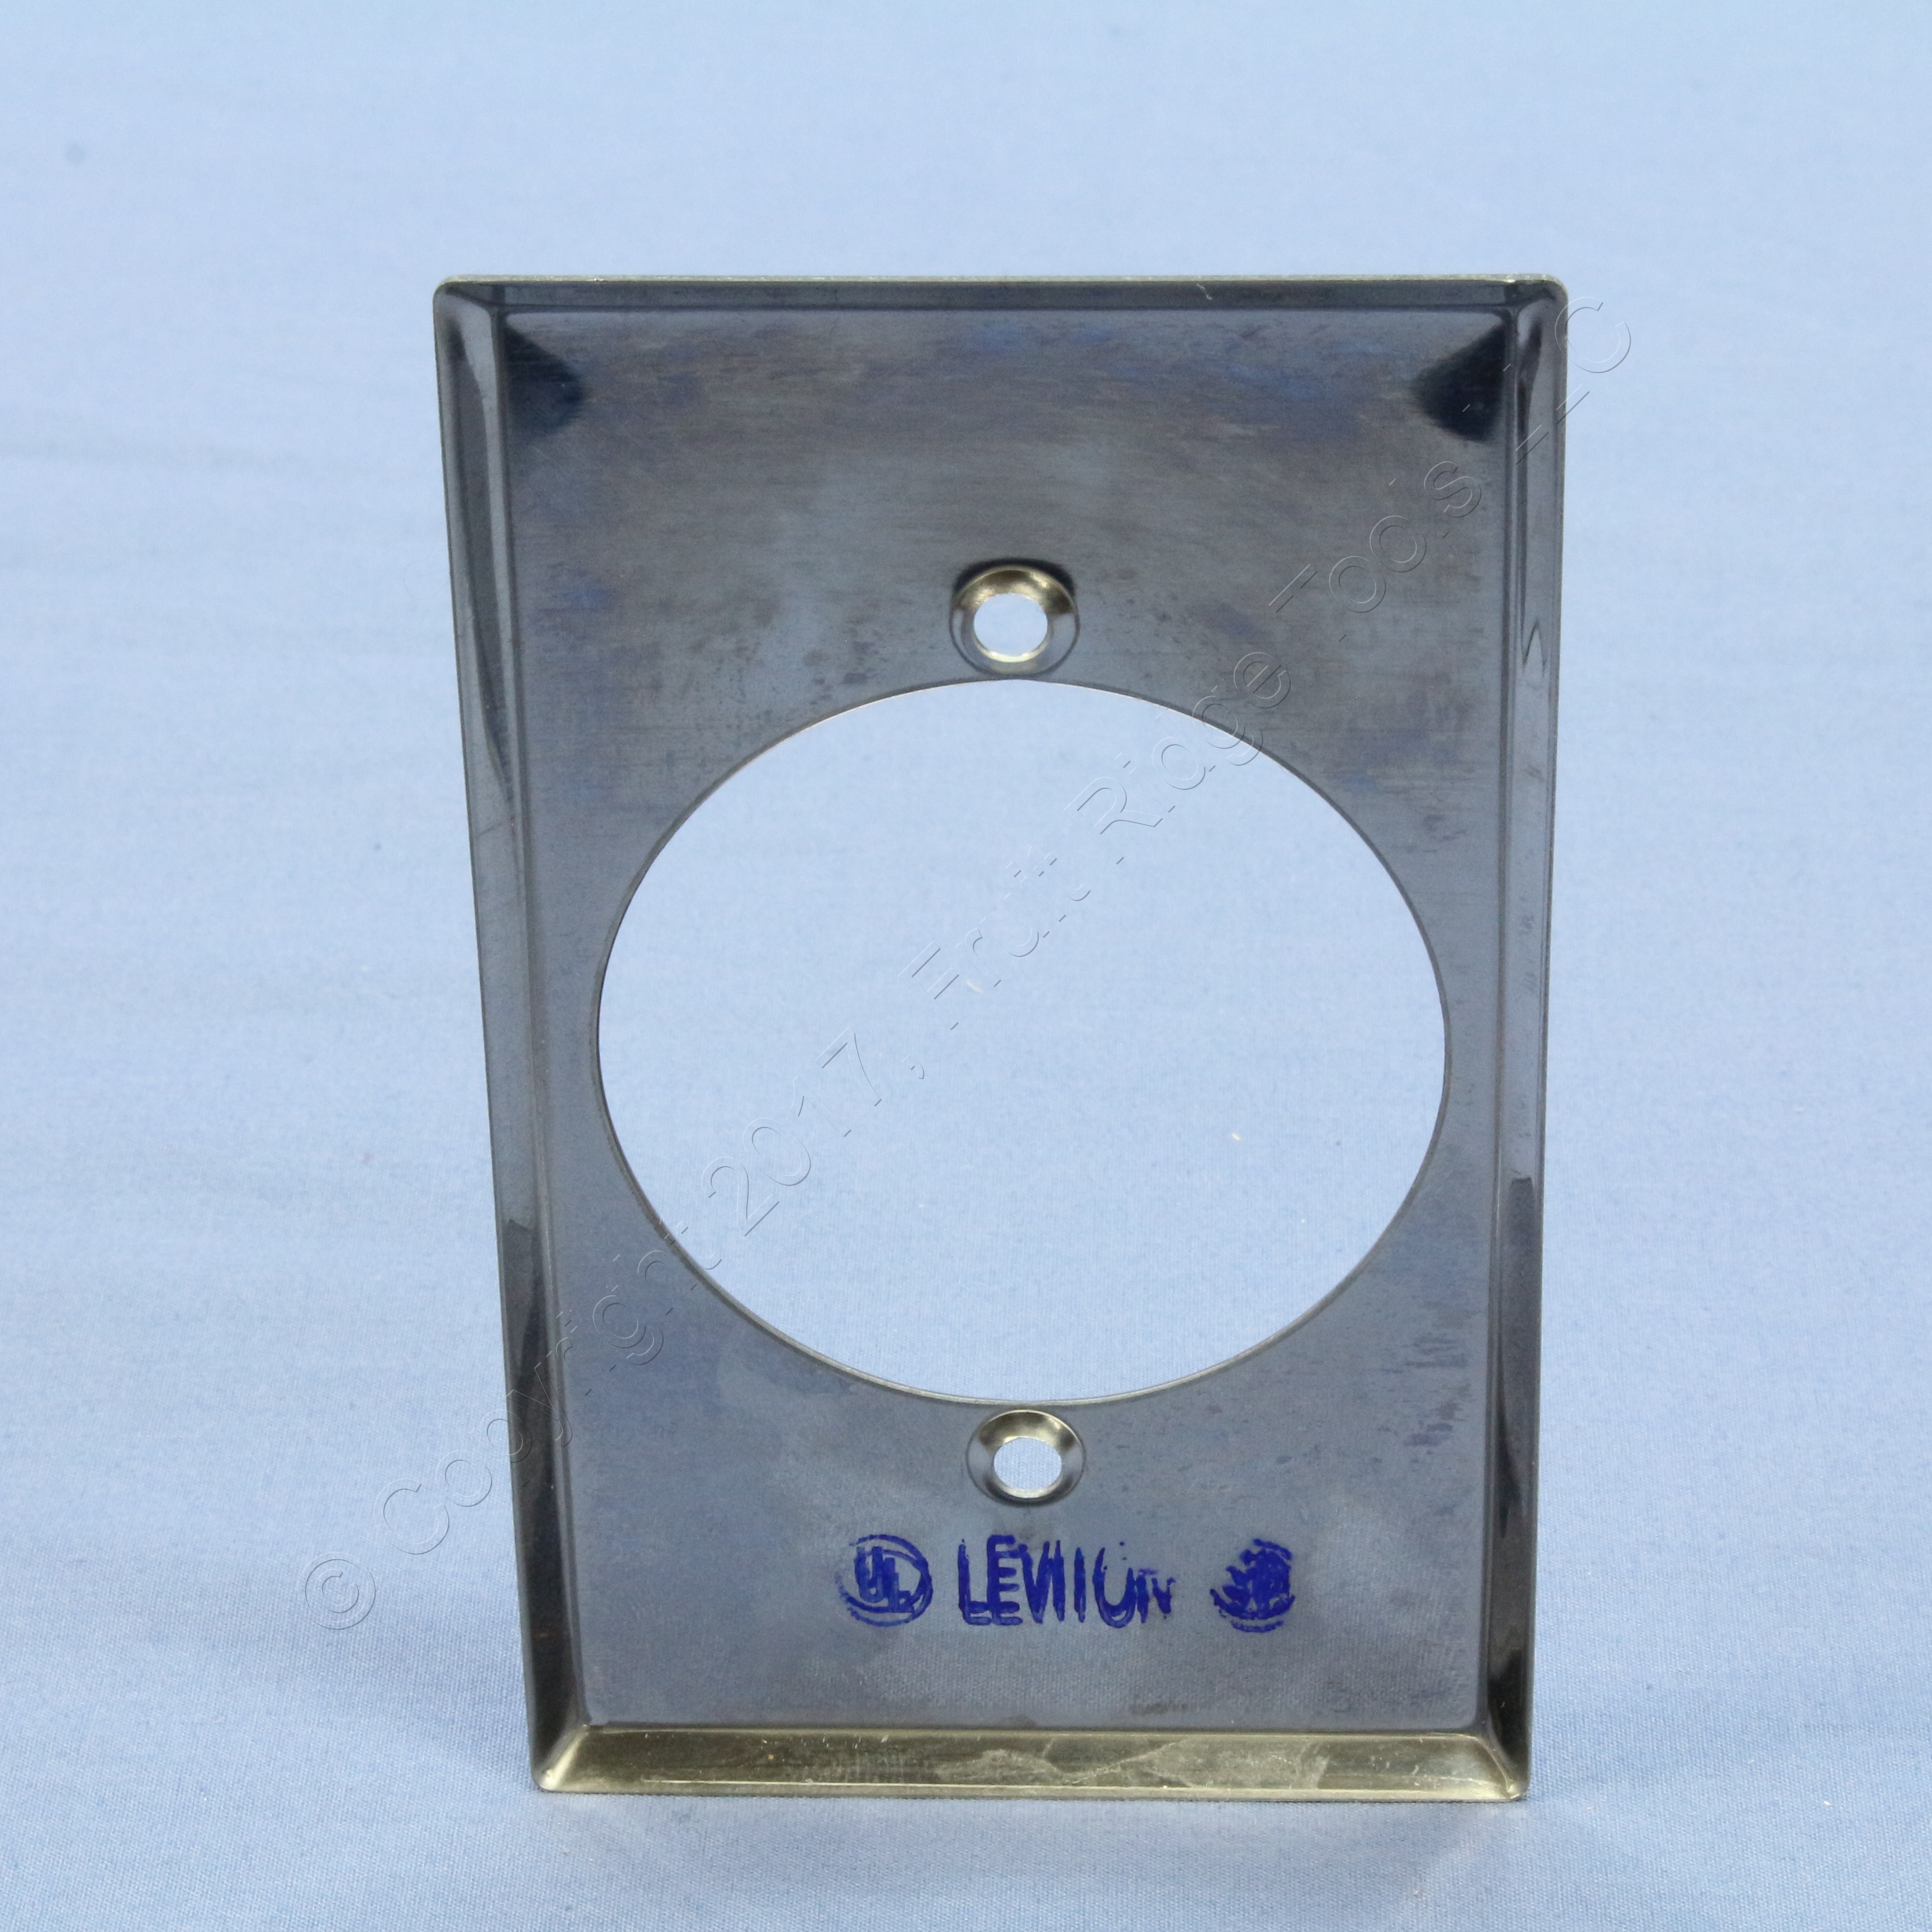 leviton stainless steel outlet covers